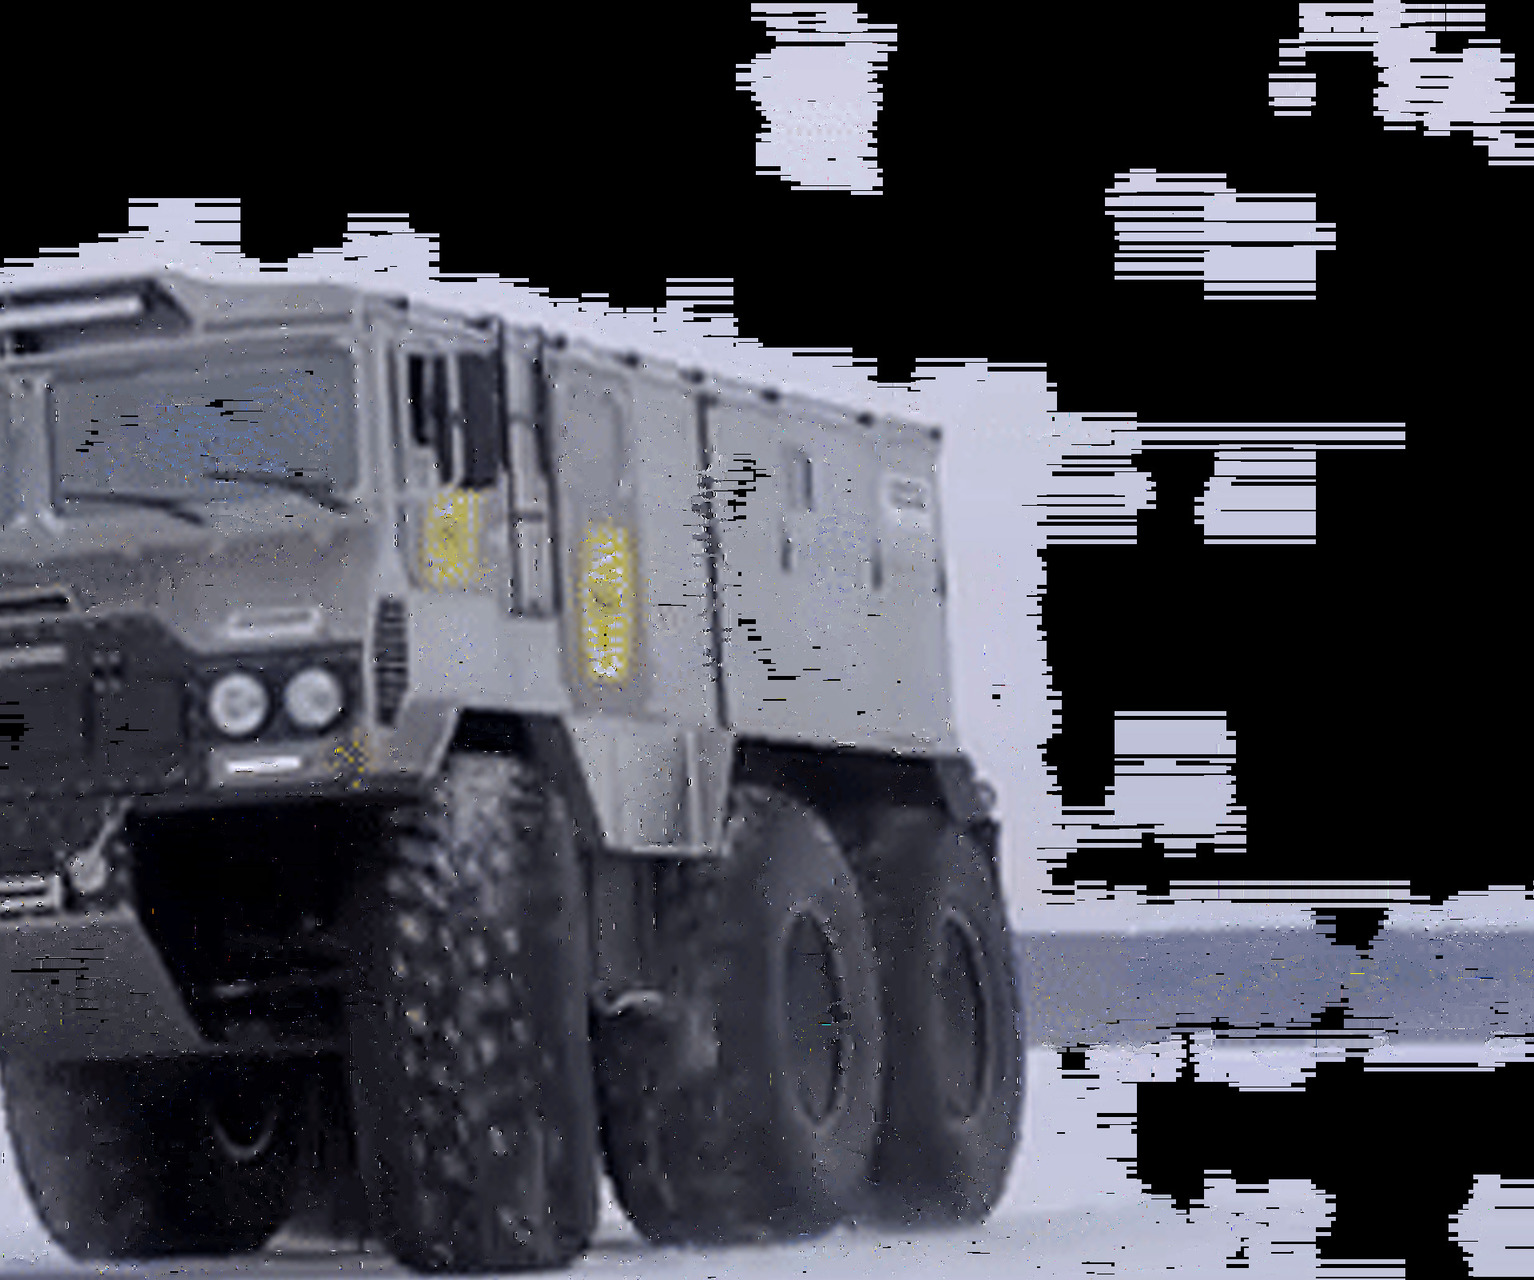 Russia Built Another Crazy Off-Roader—And They Want to Take it to the North Pole